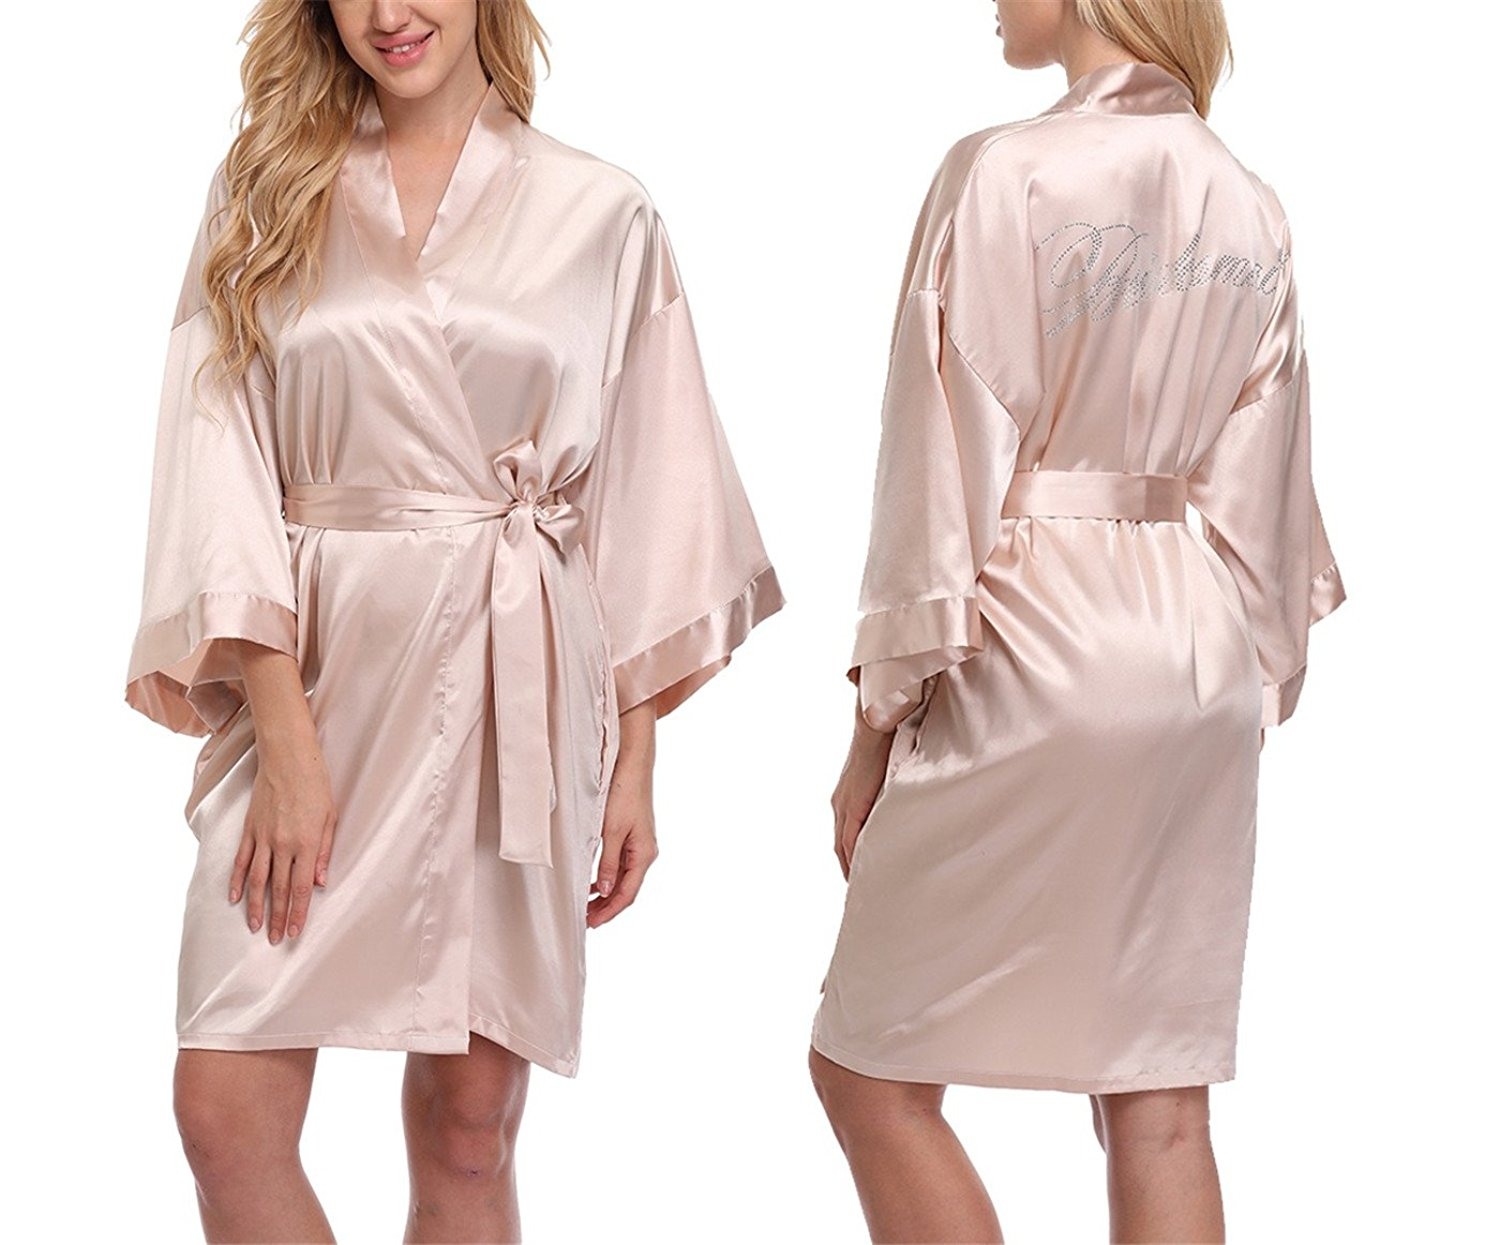 b577e6a963 Get Quotations · FADSHOW Women s Satin Wedding Robes Solid Color Short Kimono  Robes for Wedding Party-Silky Touch